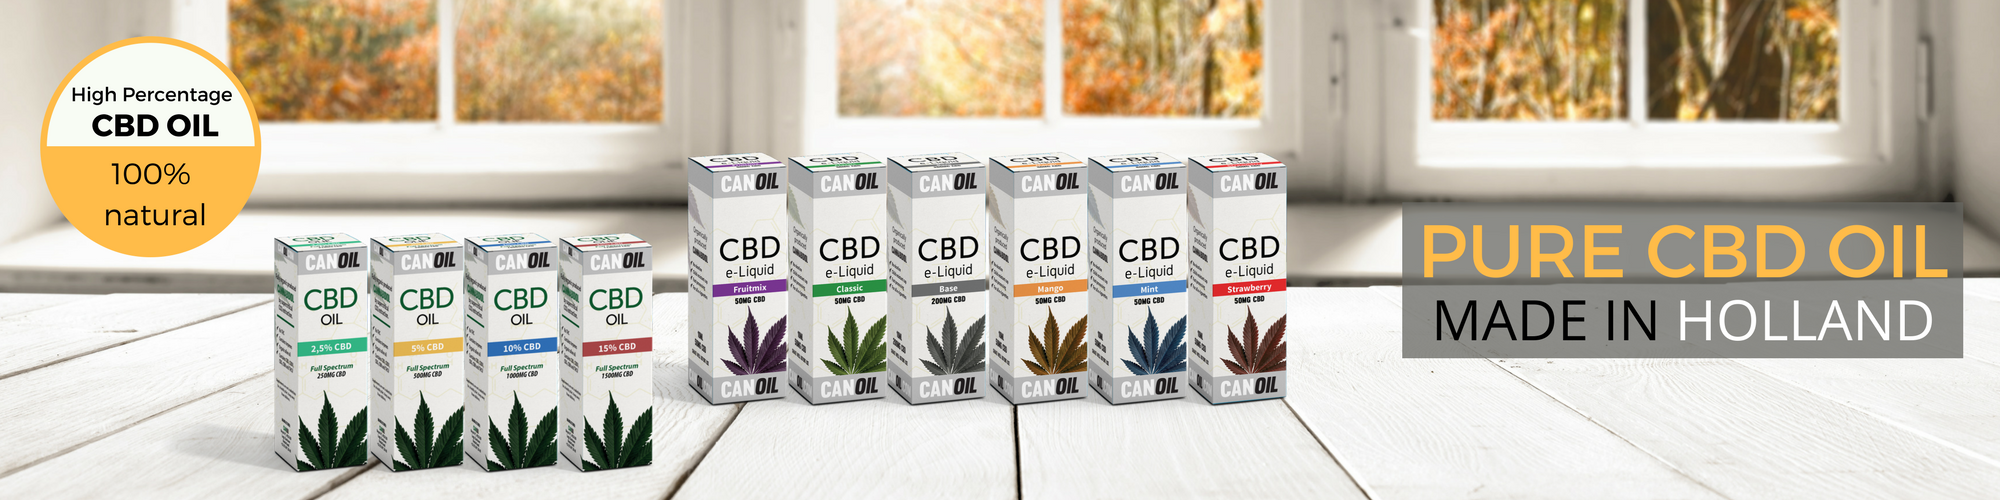 CBD manufacturer CBD Oil and CBD E-Liquids | 100% natural CBD Oil banner 2